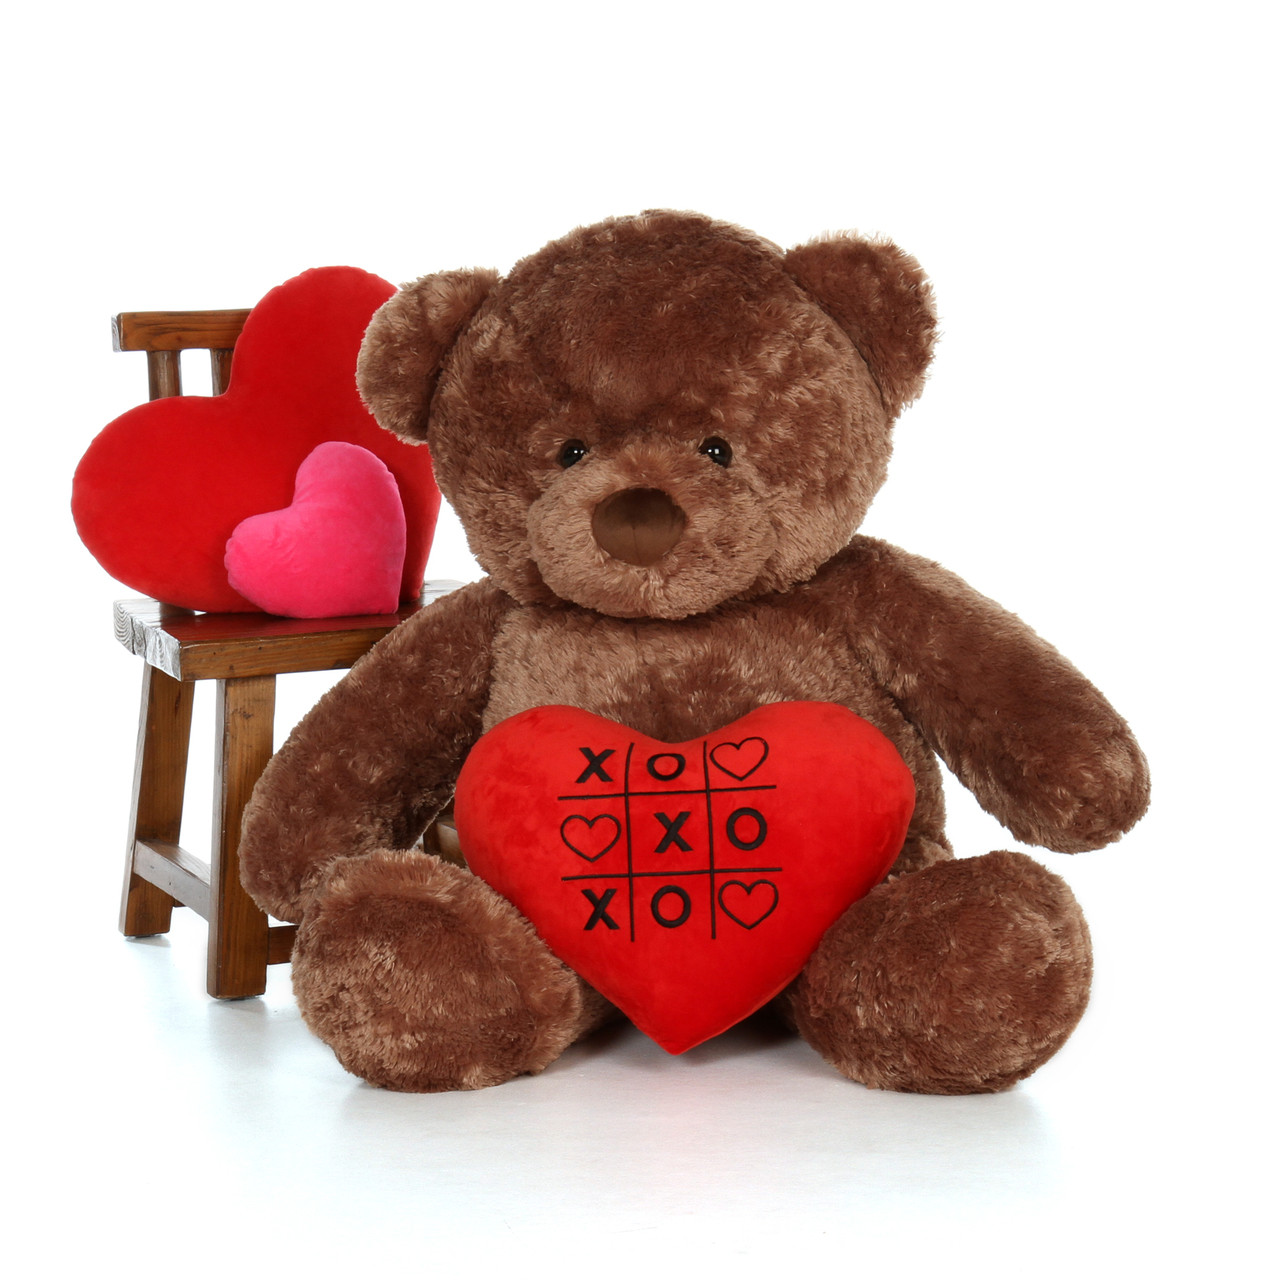 4ft Mocha Brown Big Chubs Bear by Giant Teddy with a cute XOXO heart pillow